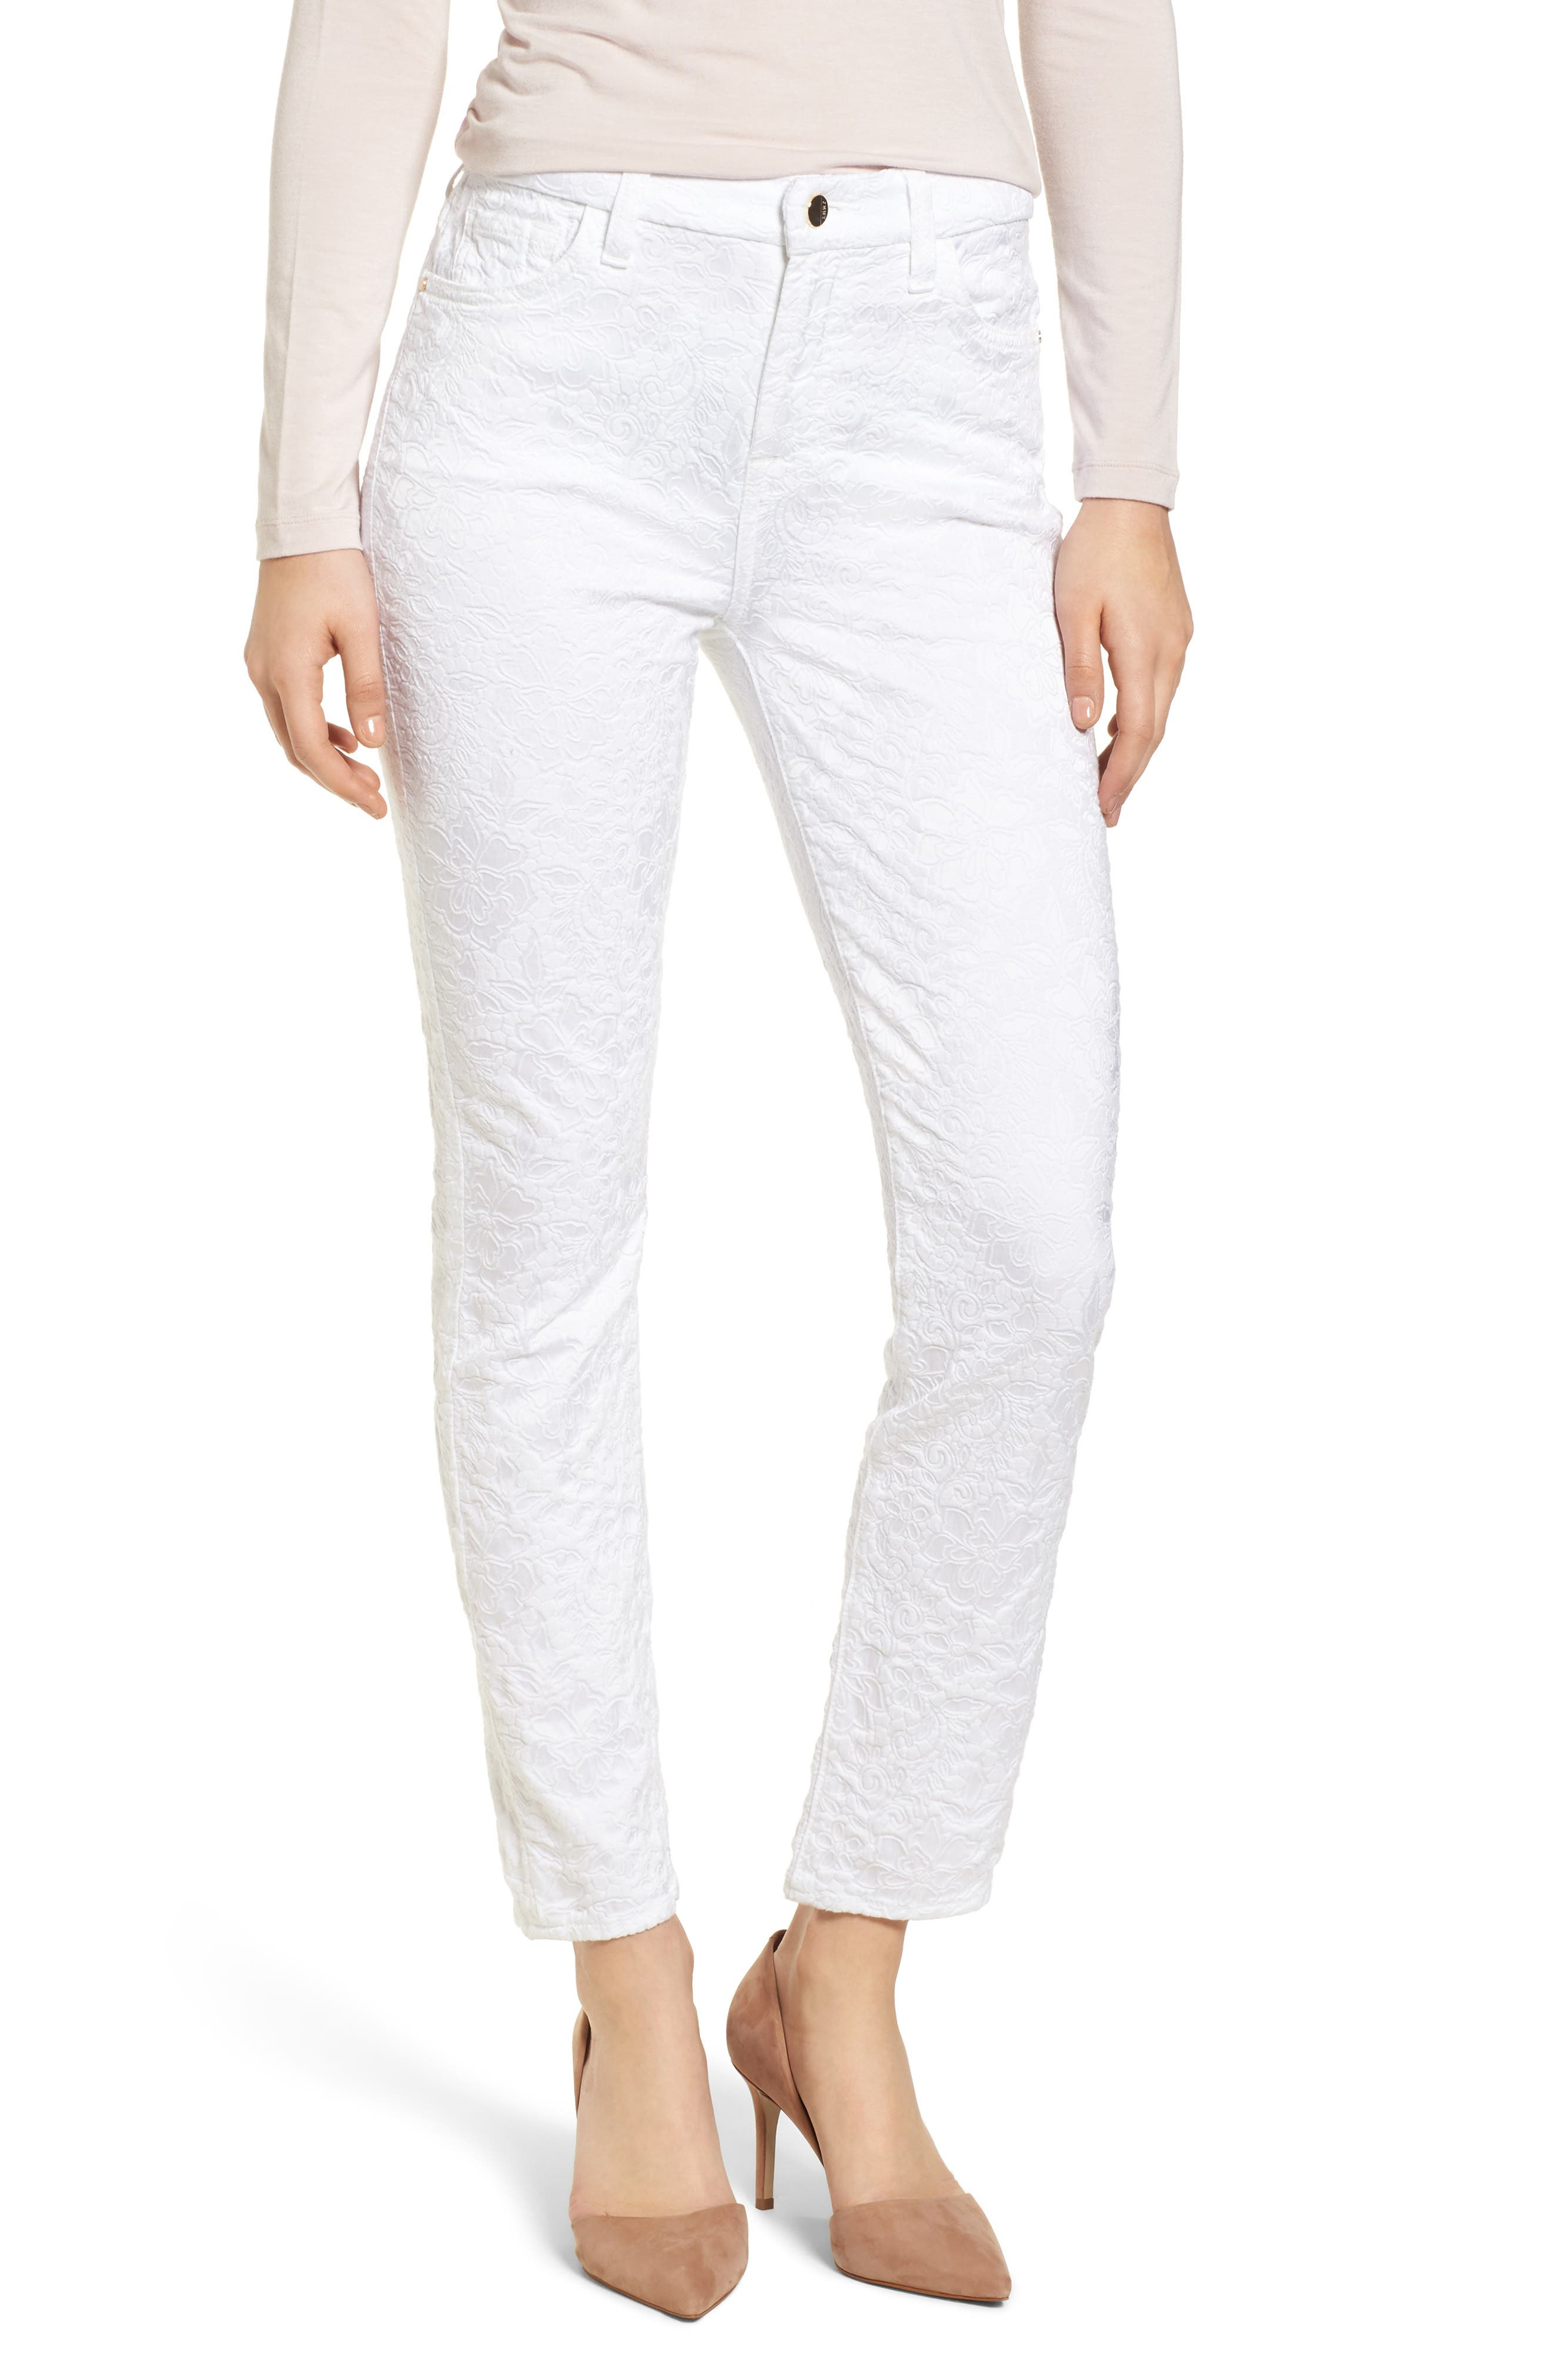 JEN7 BY 7 FOR ALL MANKIND,                             Jacquard Ankle Skinny Jeans,                             Main thumbnail 1, color,                             100